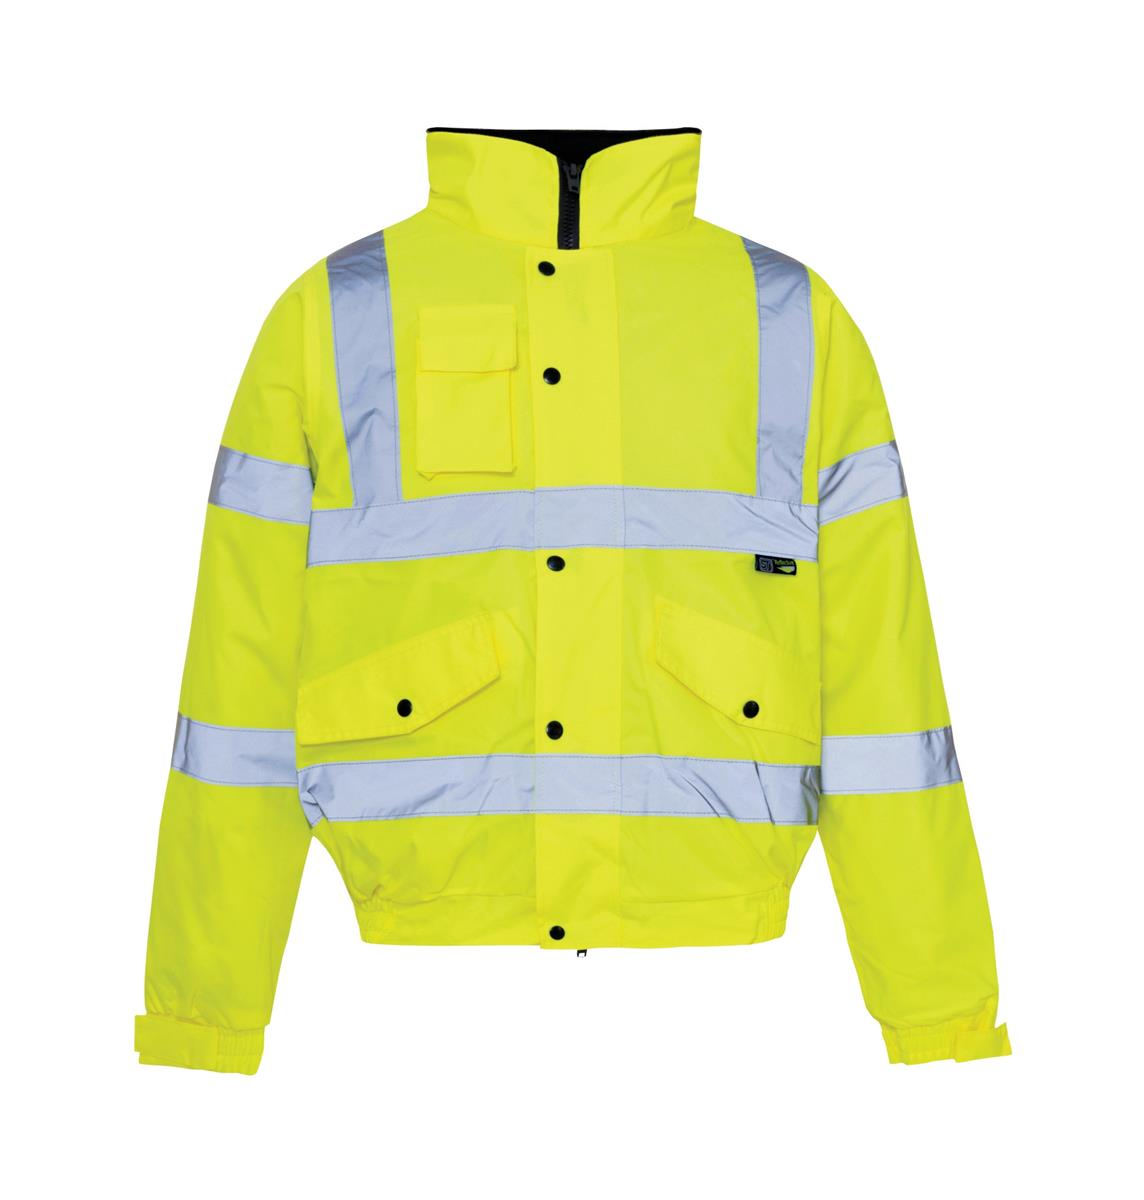 ST High Vis Standard Jkt Storm Bomber Warm Padded Lining XXXXLarge Yellow Ref 36847 *Approx 3 Day L/Time*